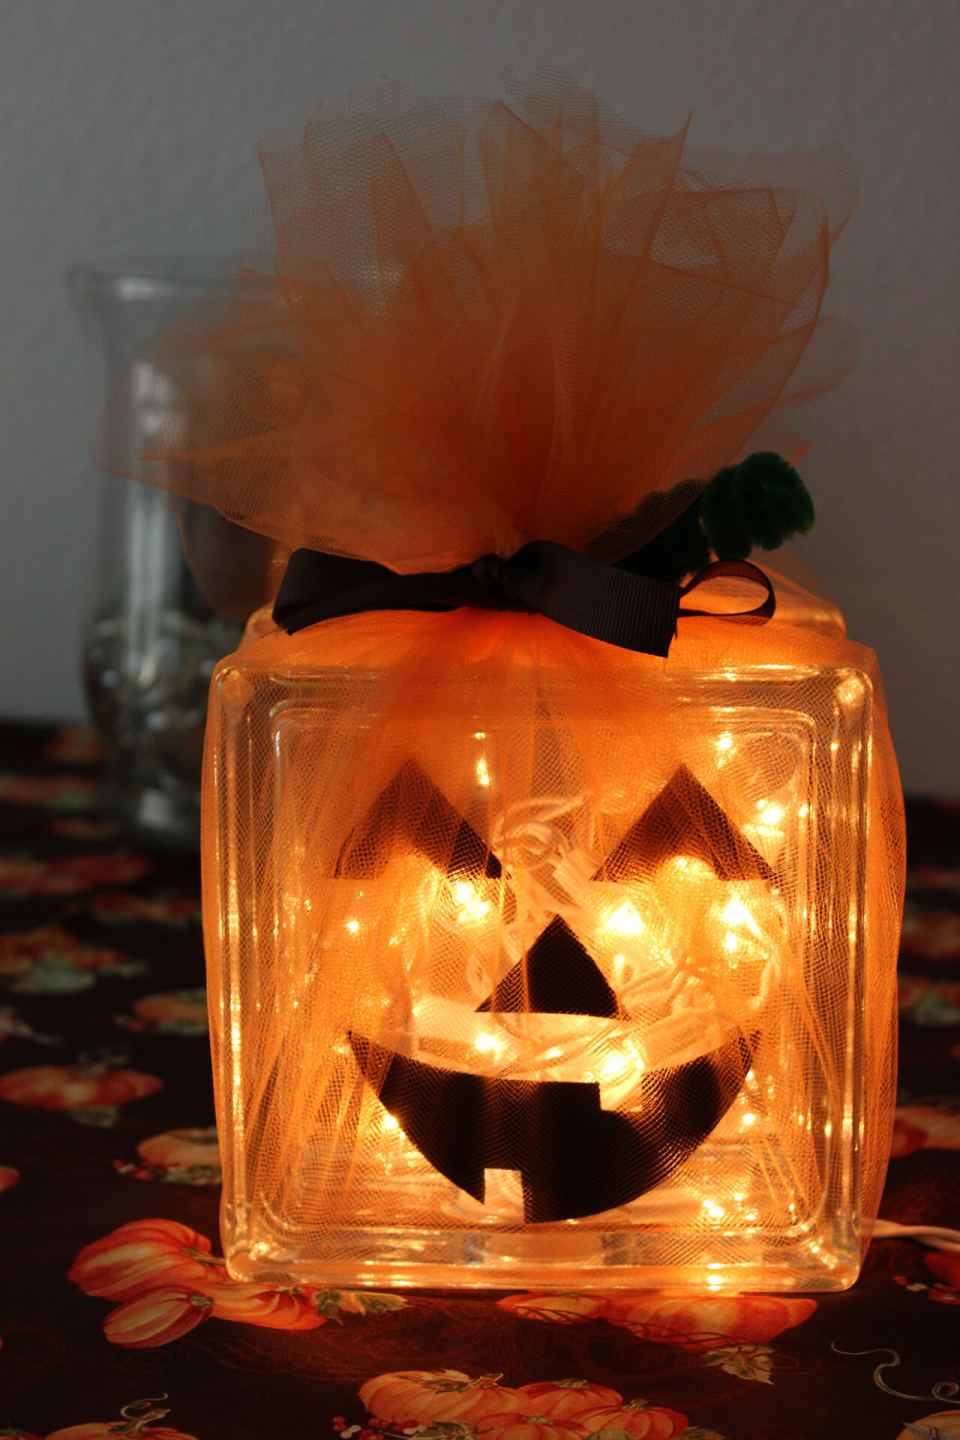 Glass Pumpkins Still Shine Bright | DIY Indoor Halloween Decorating Ideas